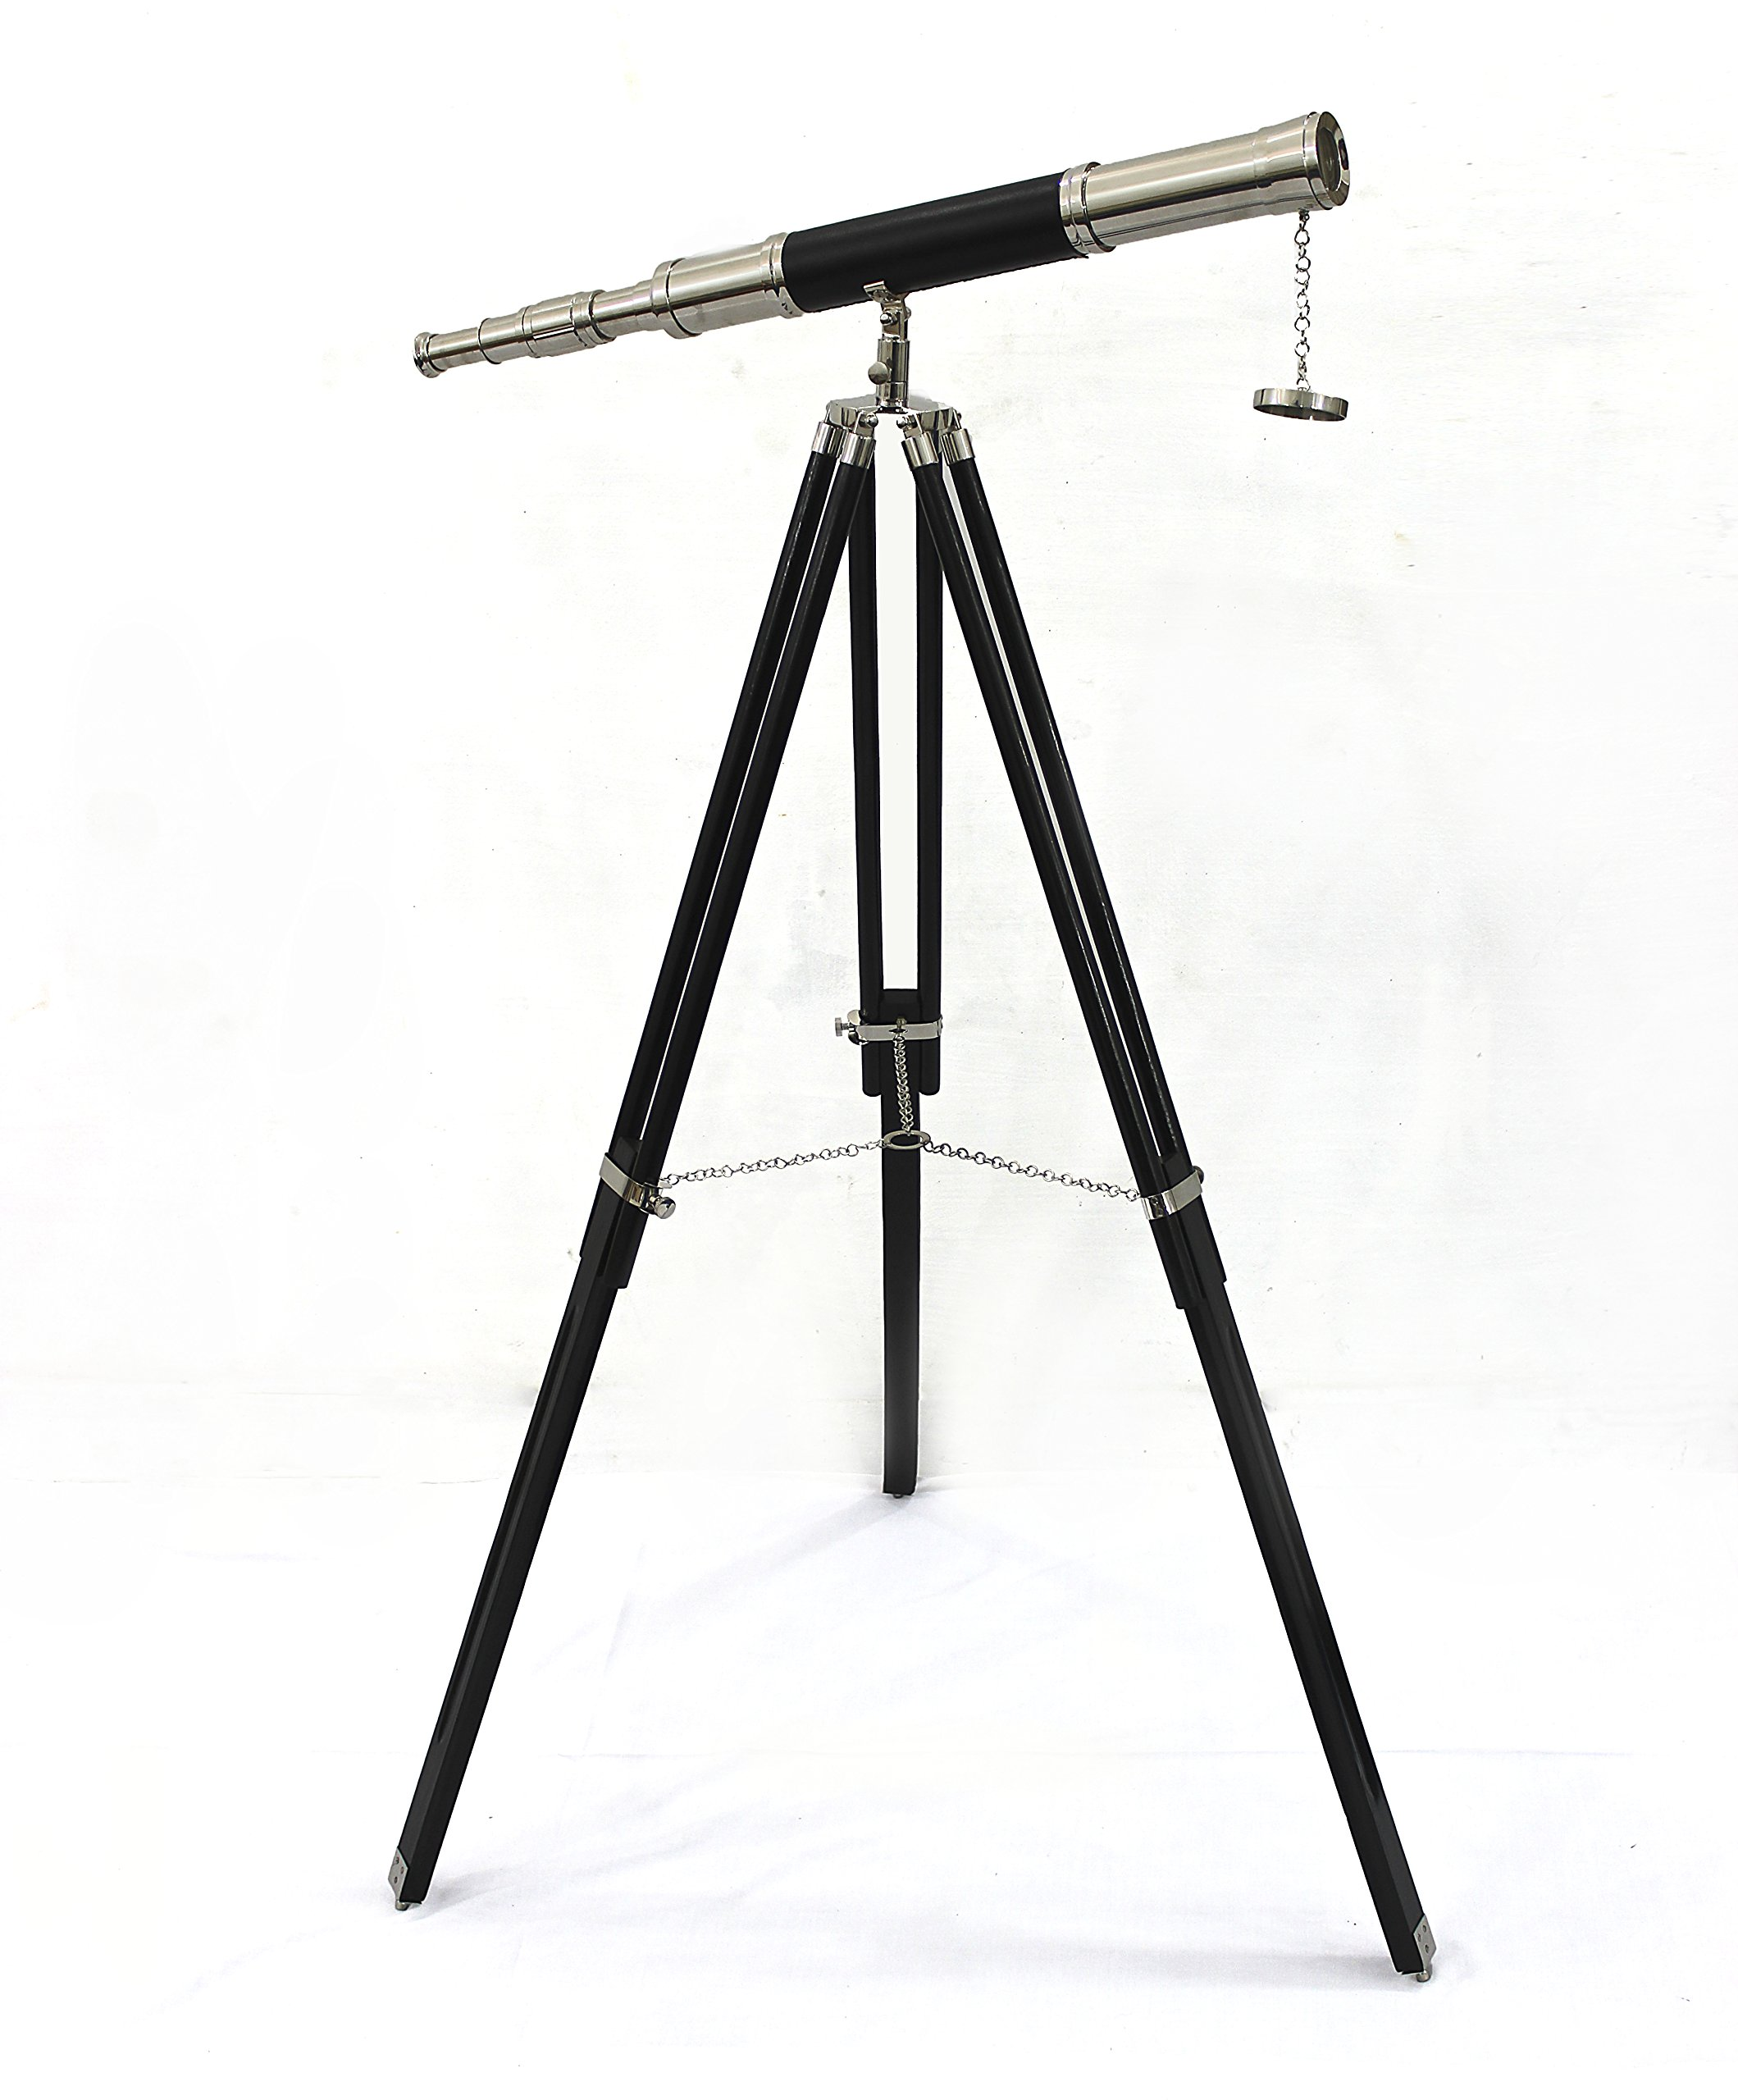 CollectiblesBuy Vintage Floor Standing Brass & Leather Wrapped Telescope Wooden Tripod Stand Nickel Finish